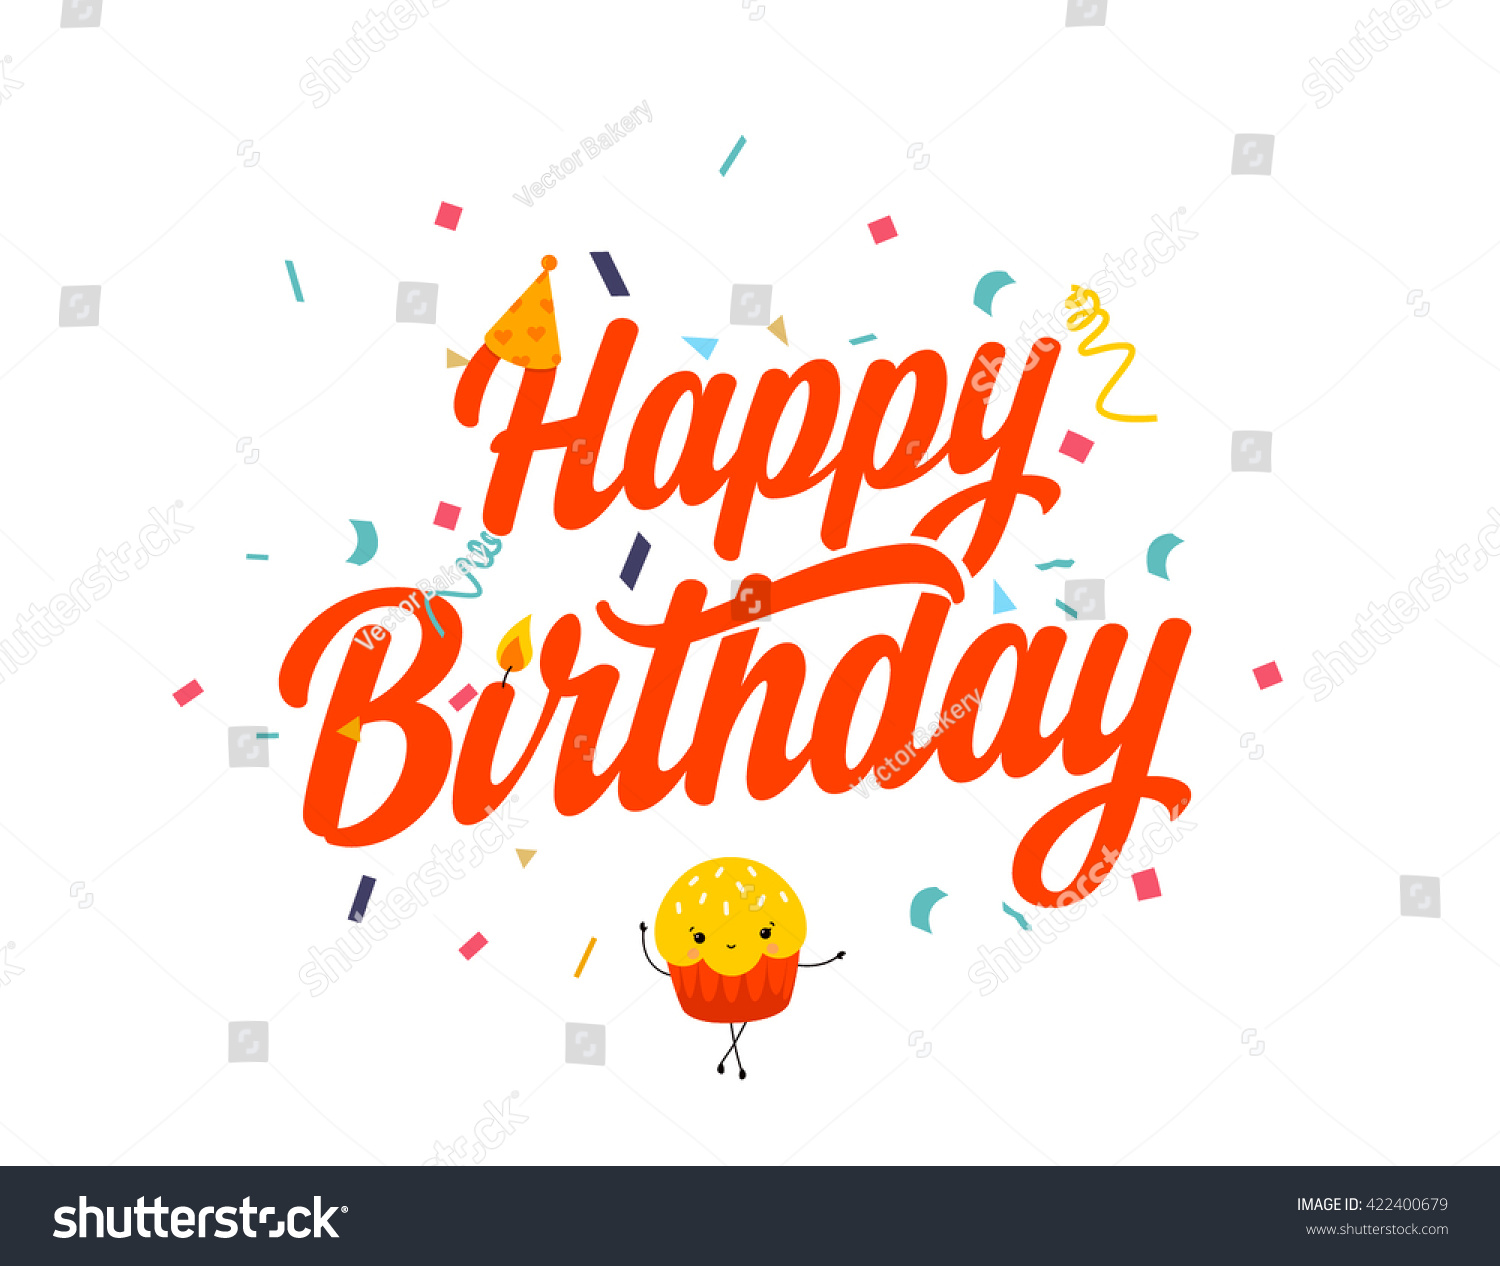 Happy birthday message birthday wish happy stock vector royalty happy birthday message birthday wish happy birthday greetings birthday card m4hsunfo